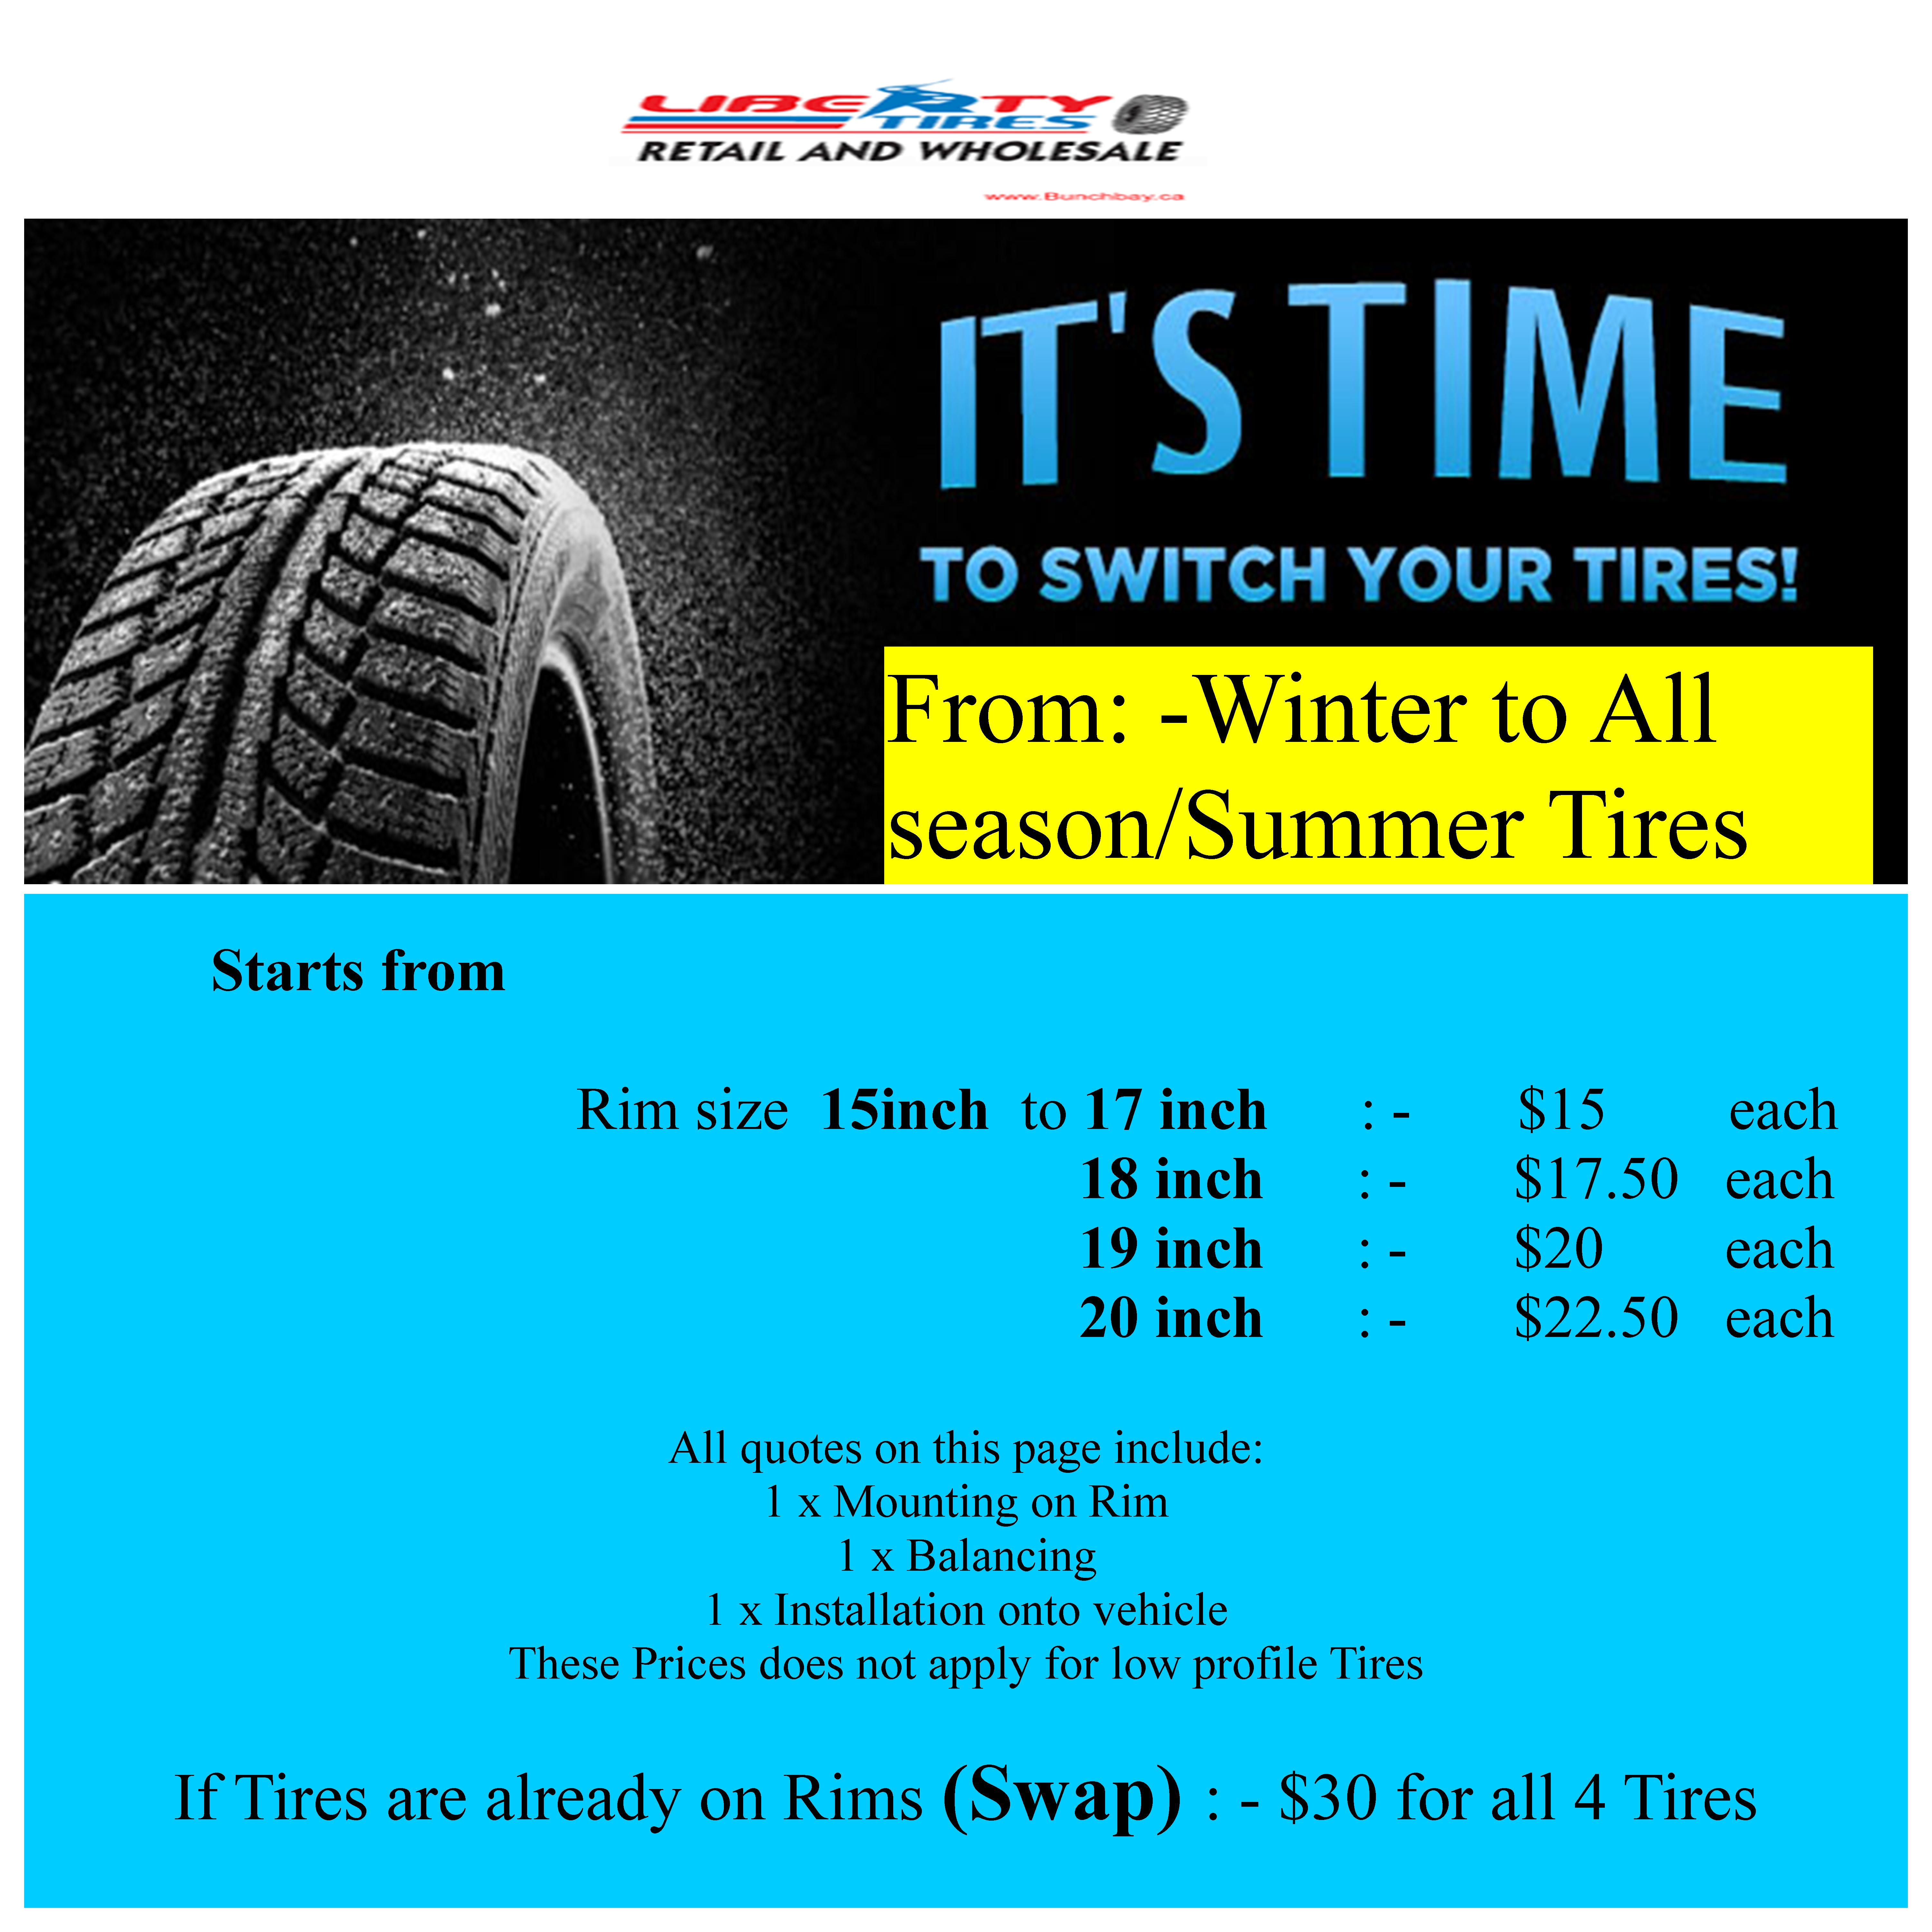 Tire Quotes Liberty Tires  Mississauga On Tires And Tire Services And Wheels